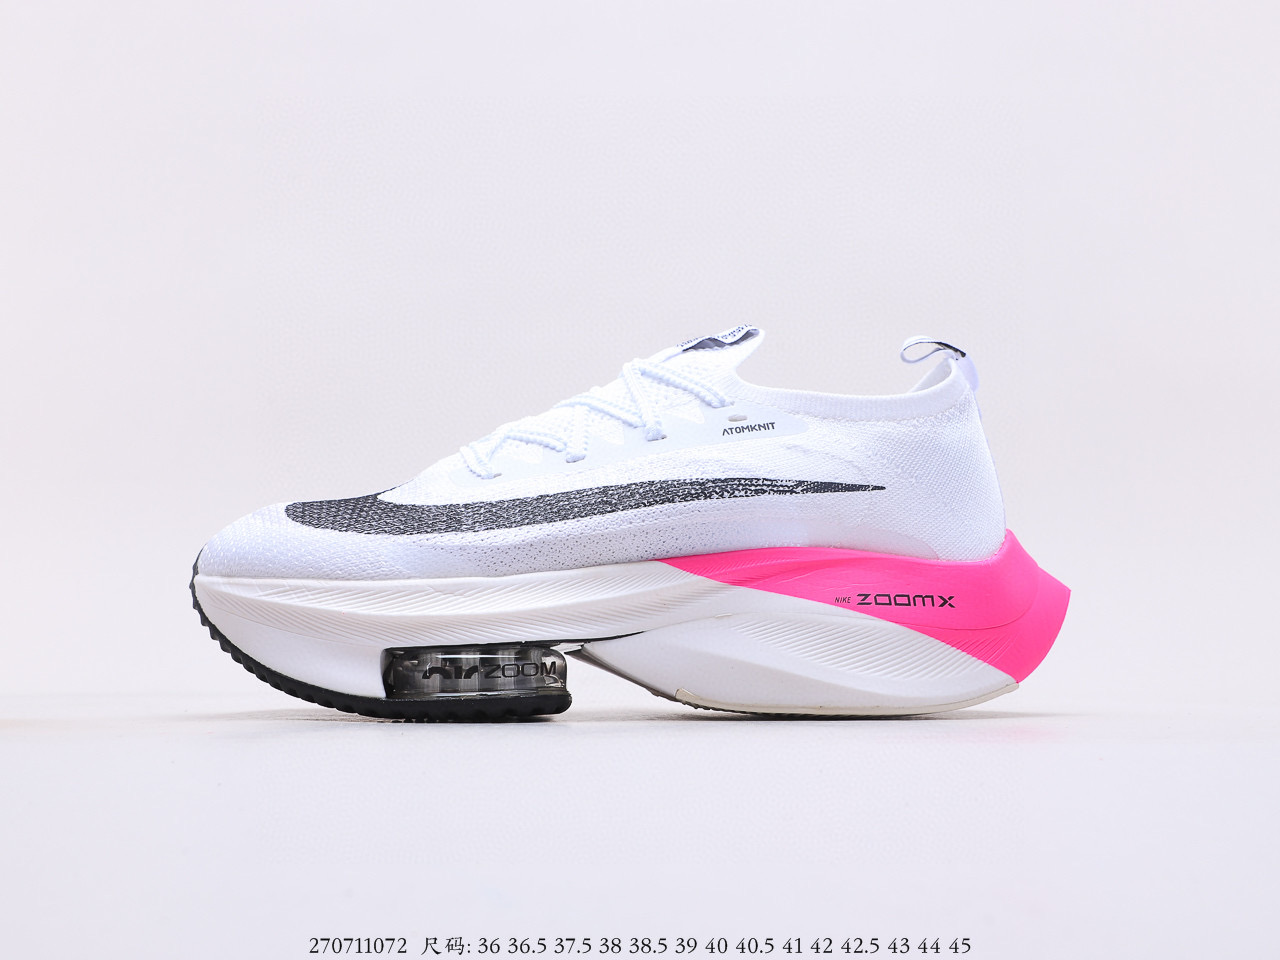 Nike's new running shoes Air Zoom Alphafly NEXT%